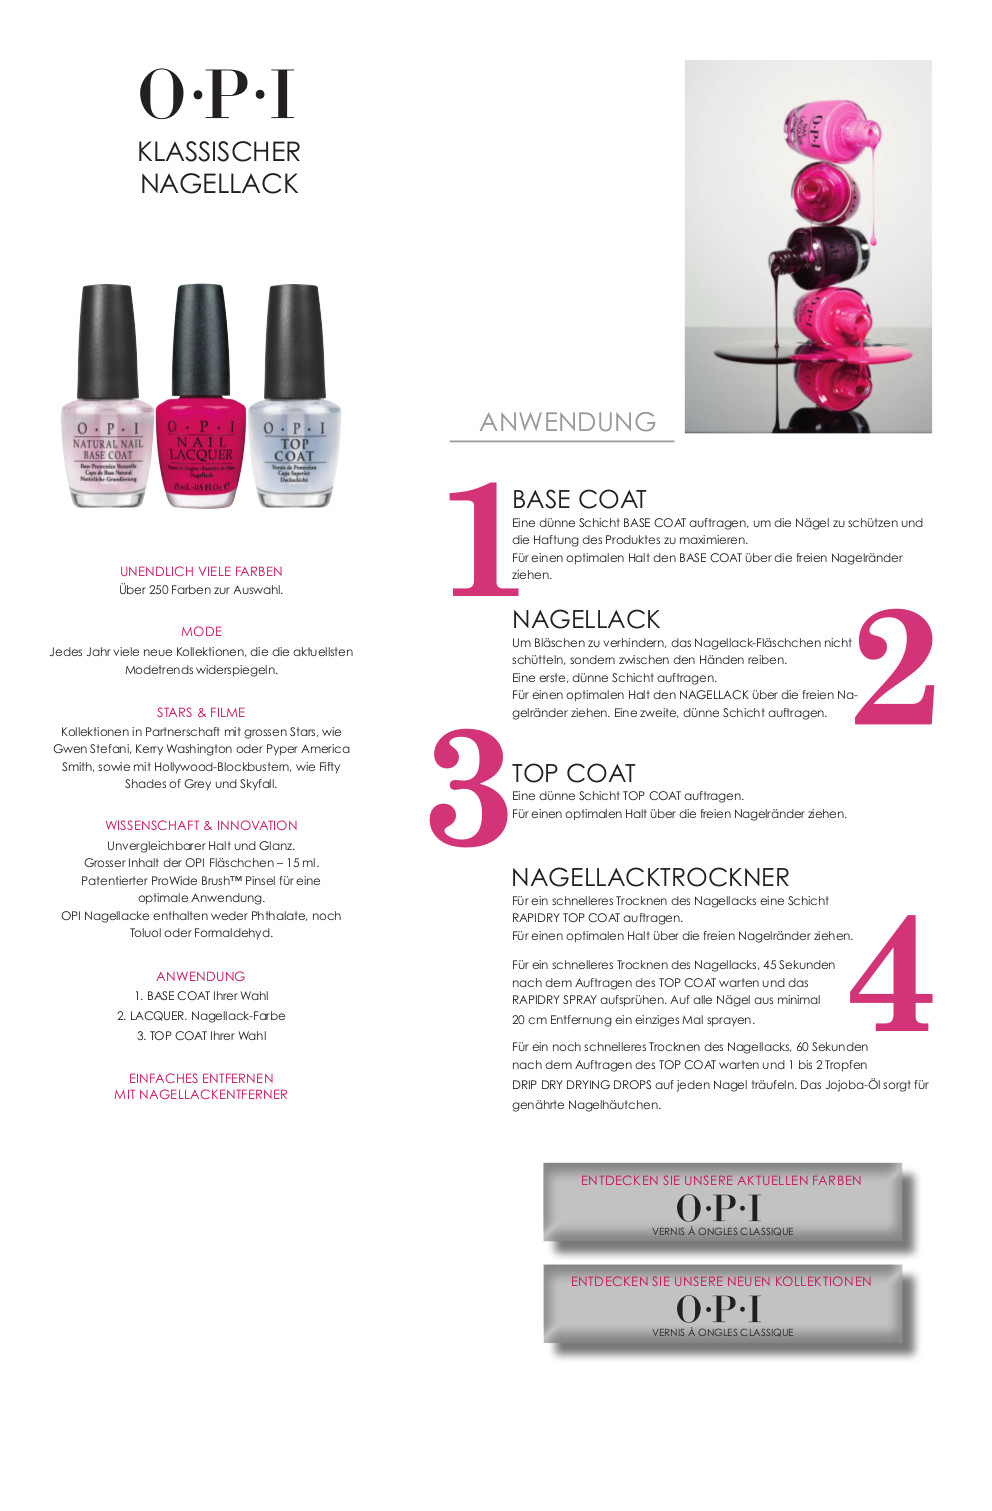 Nagellack by OPI